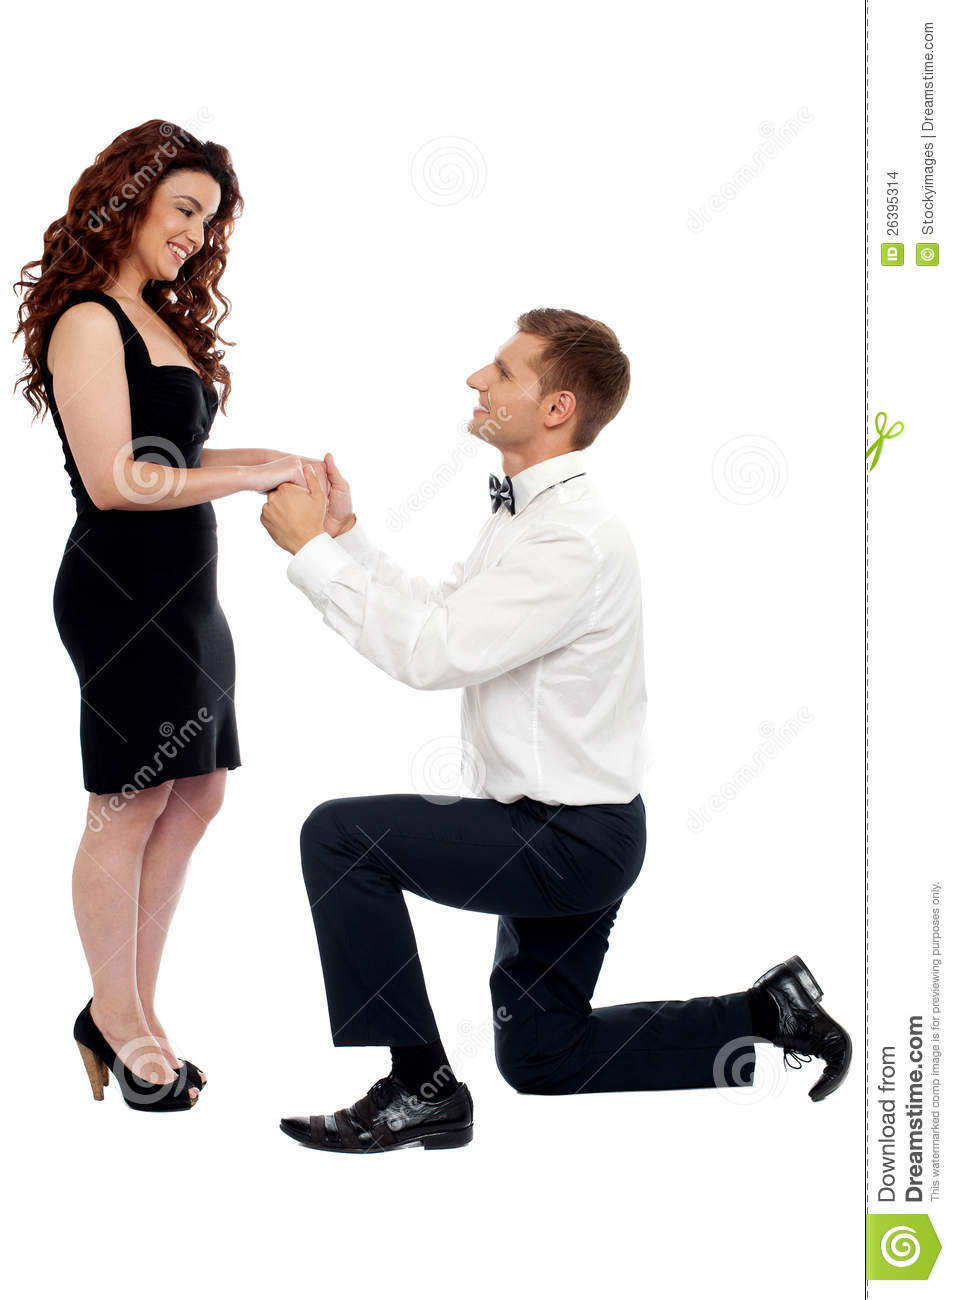 Will You Marry Me? Stock Images - Image: 26395314